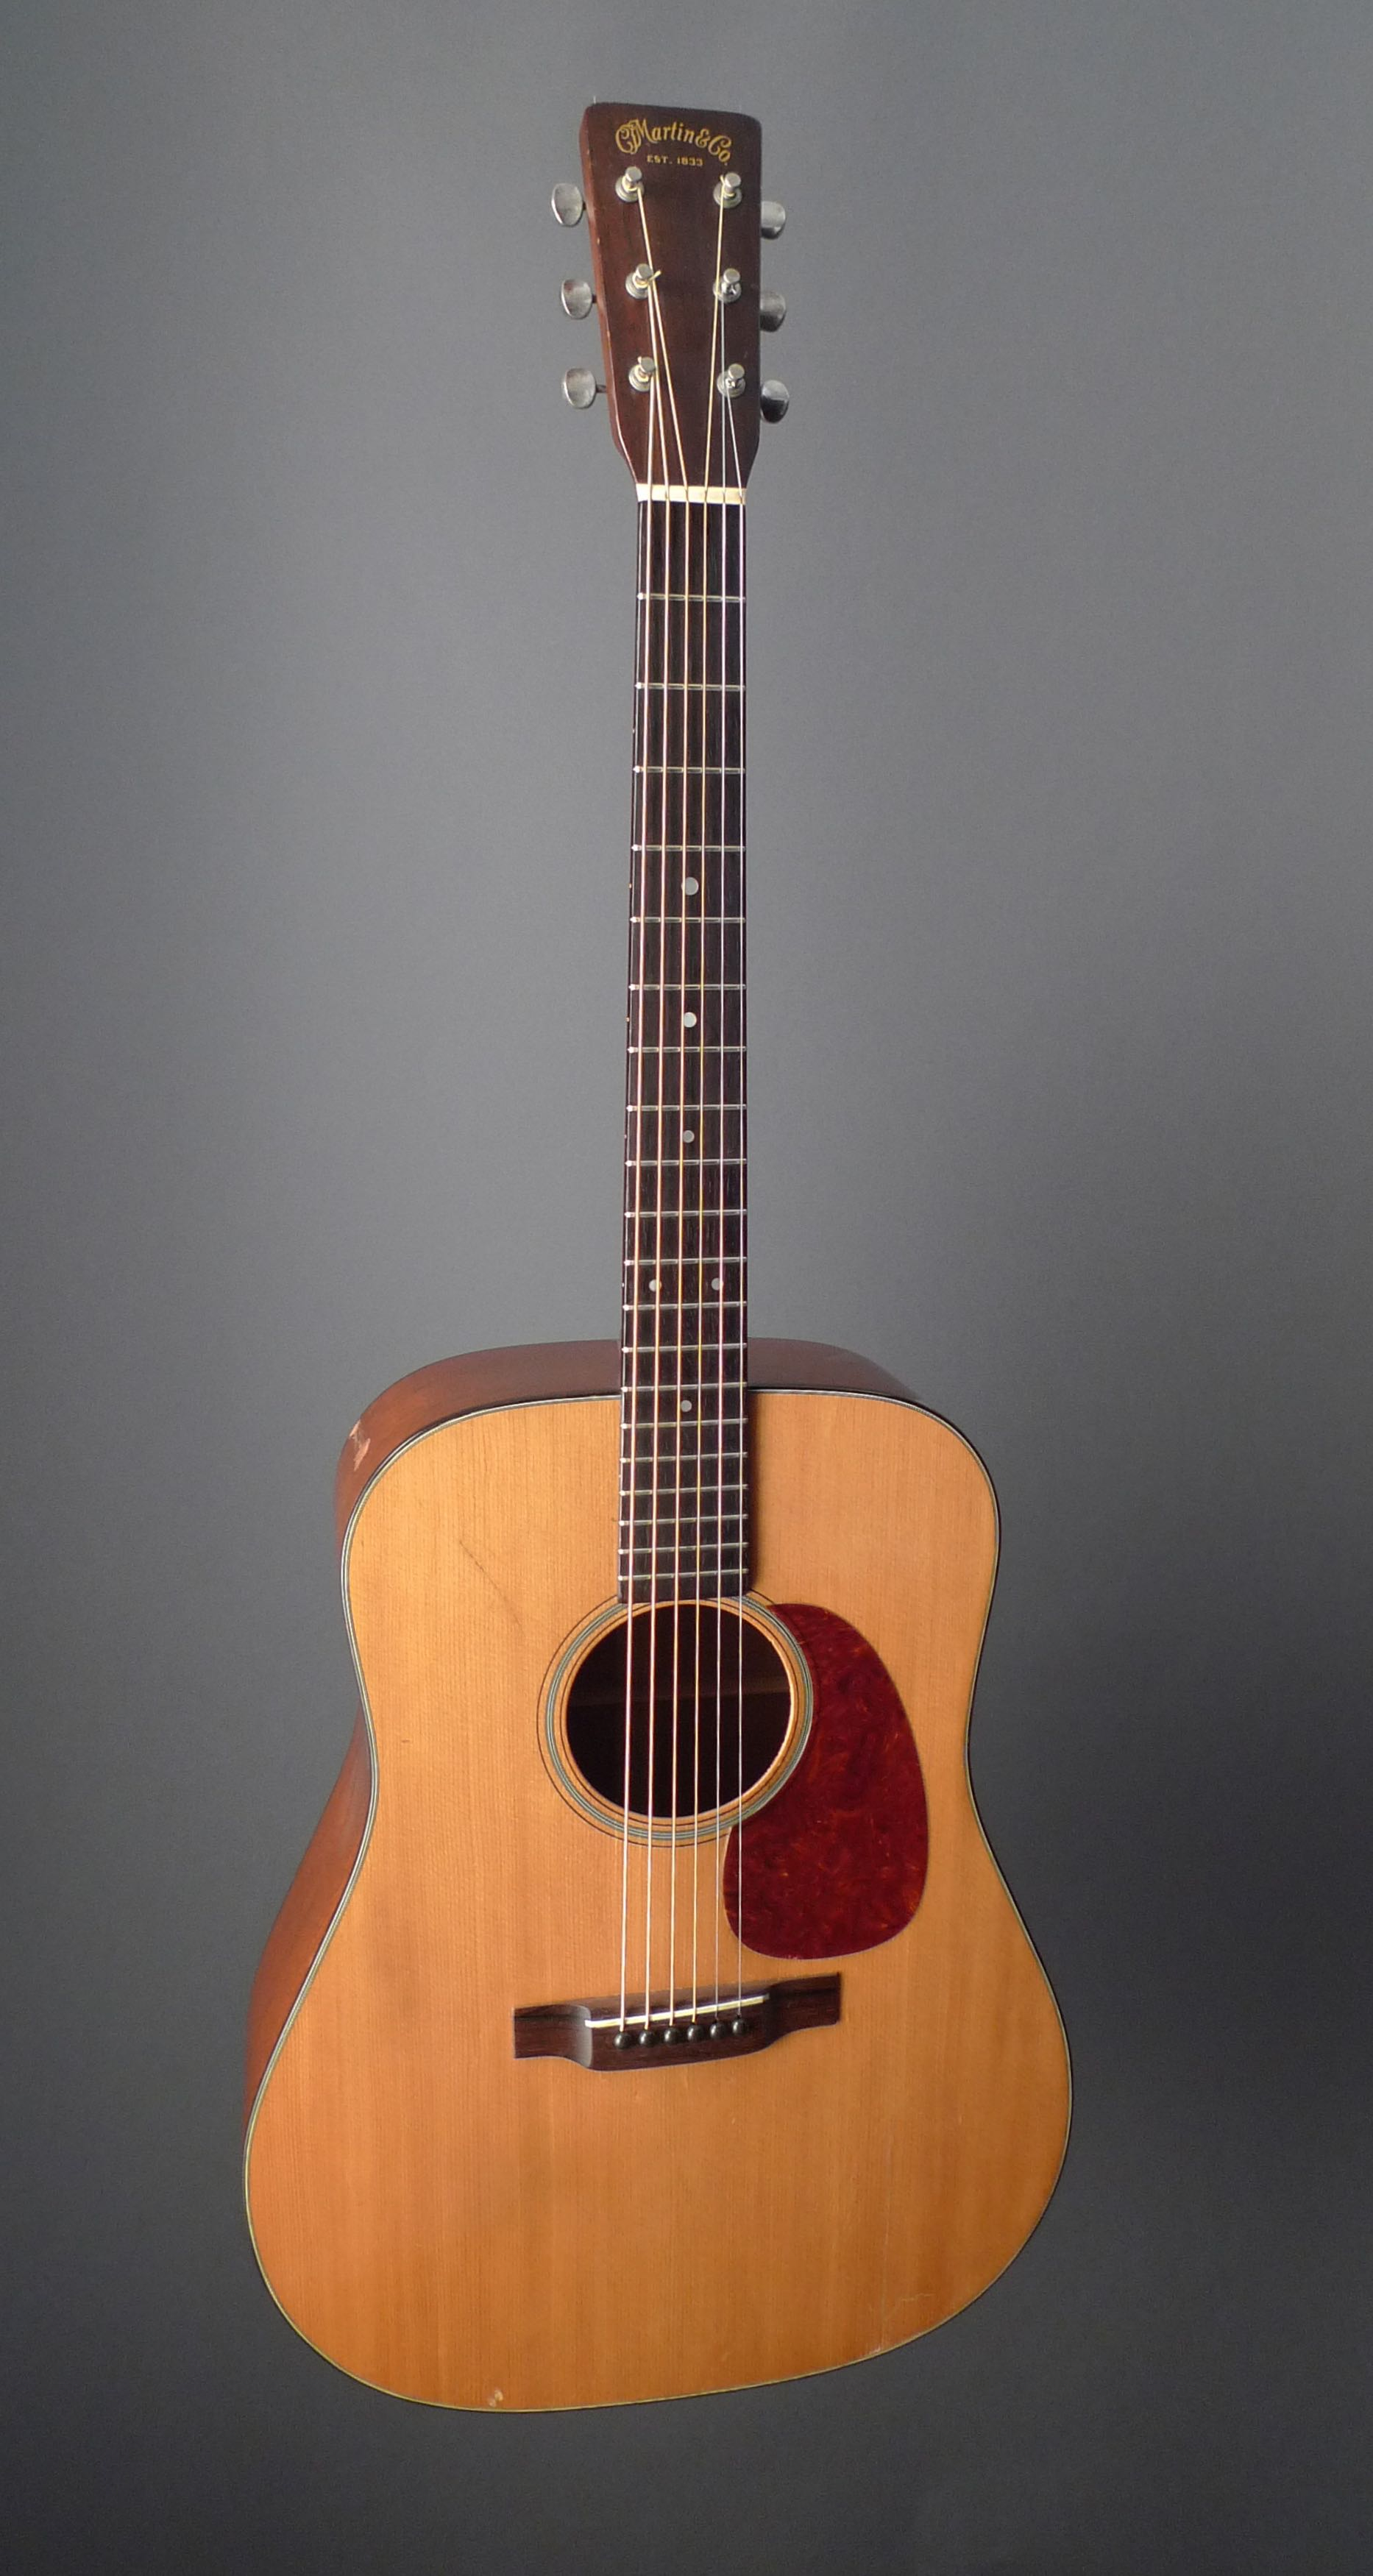 1948 martin d 18 dreadnought acoustic guitar at dream guitars. Black Bedroom Furniture Sets. Home Design Ideas